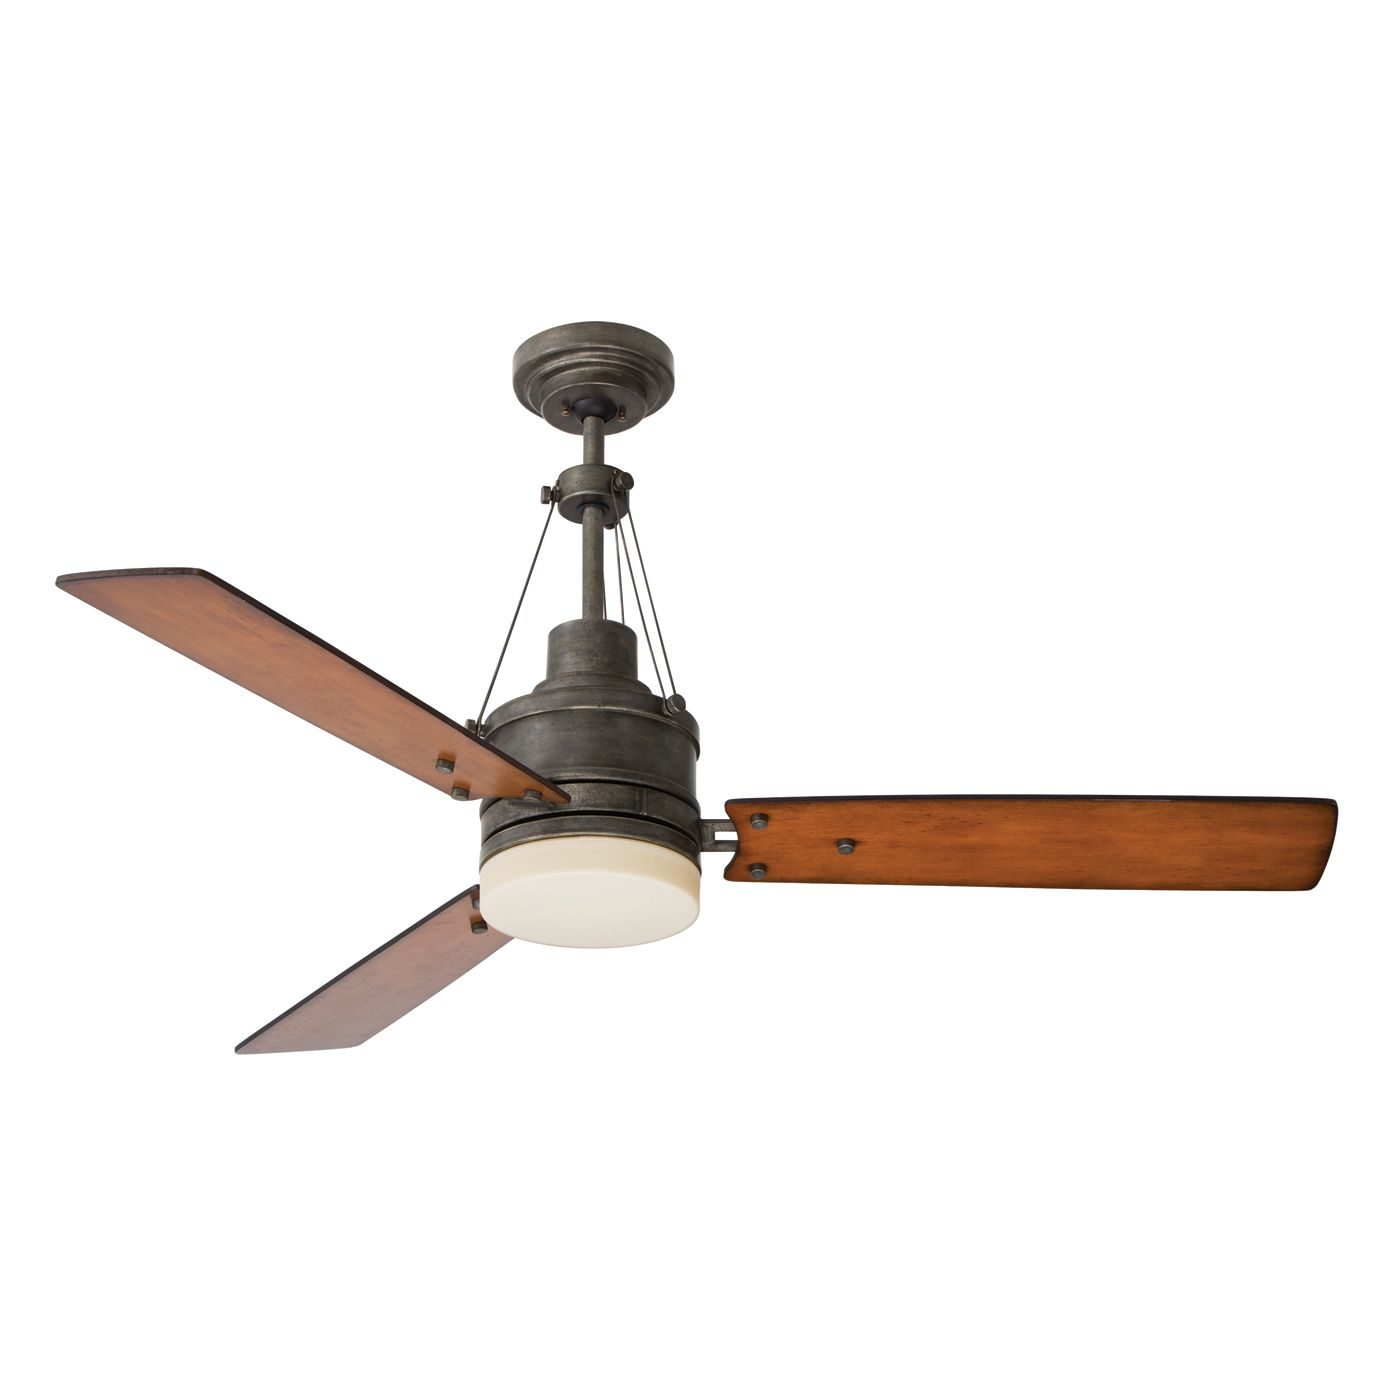 Emerson Electric CF205 2 Light 54 in Highpointe Ceiling Fan